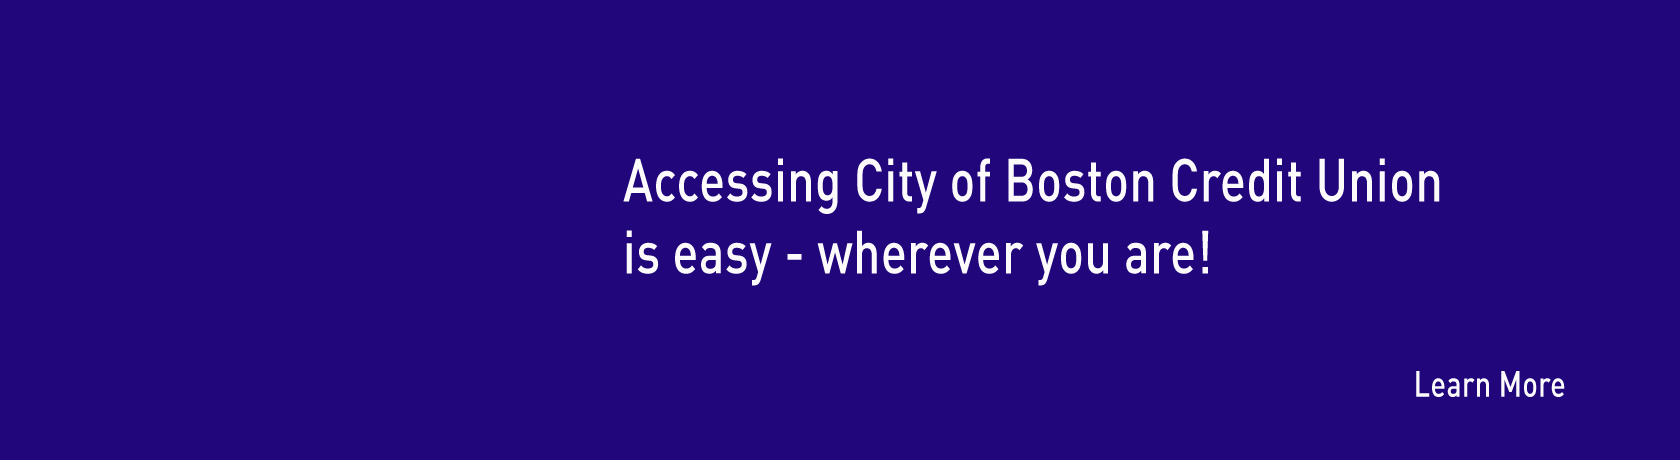 Accessing City of Boston Credit Union is easy-wherever you are!